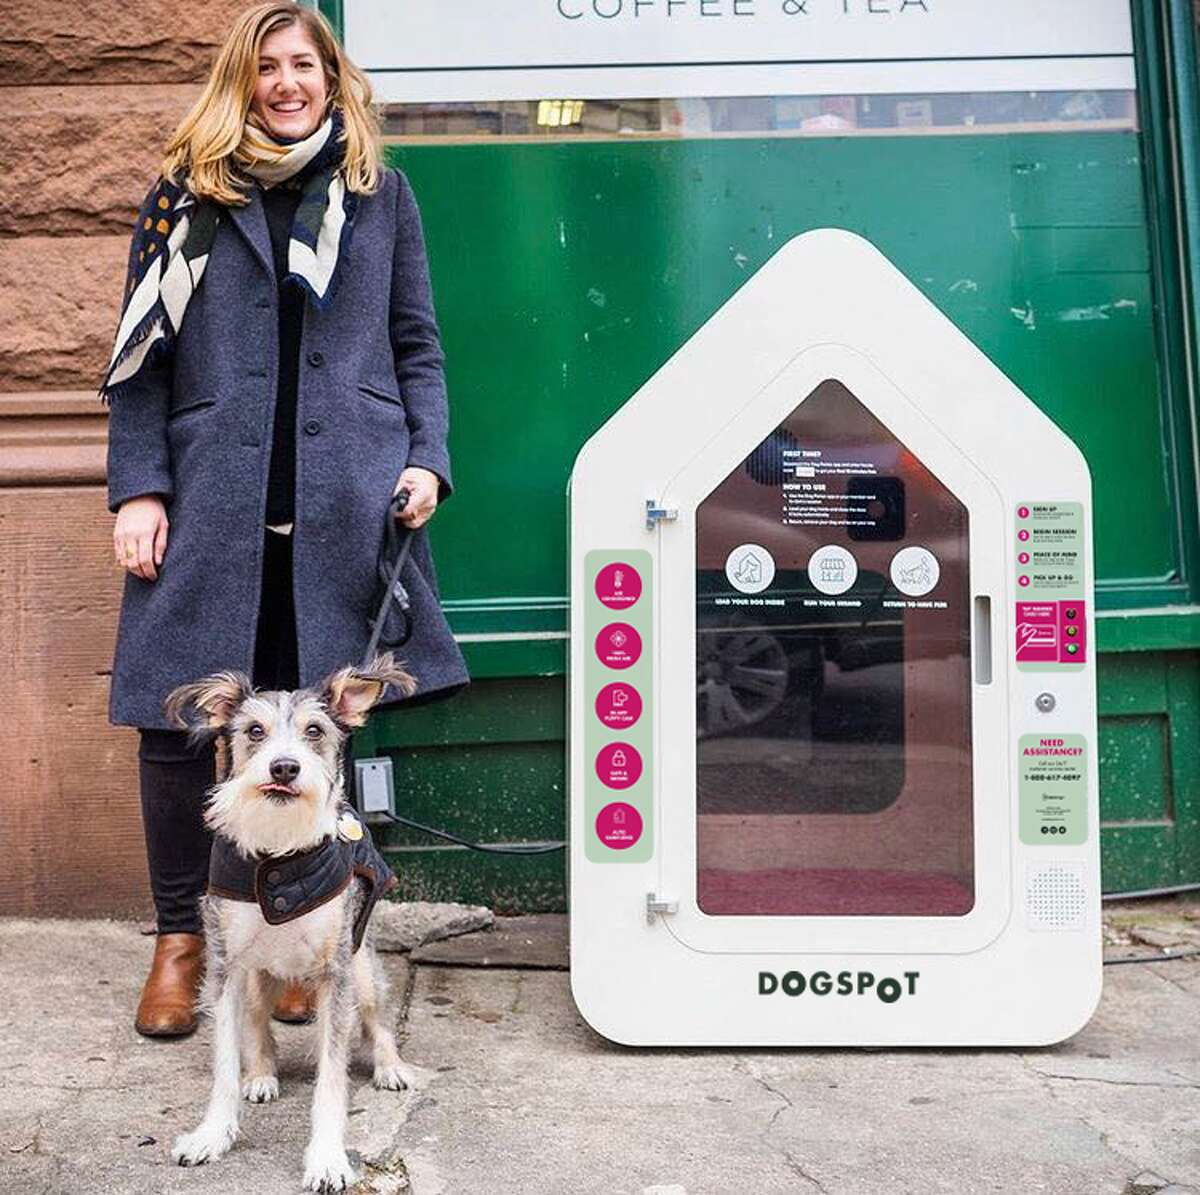 Eight of these high-tech, air conditioned dog houses will soon be found at QFC locations throughout the greater Seattle area.